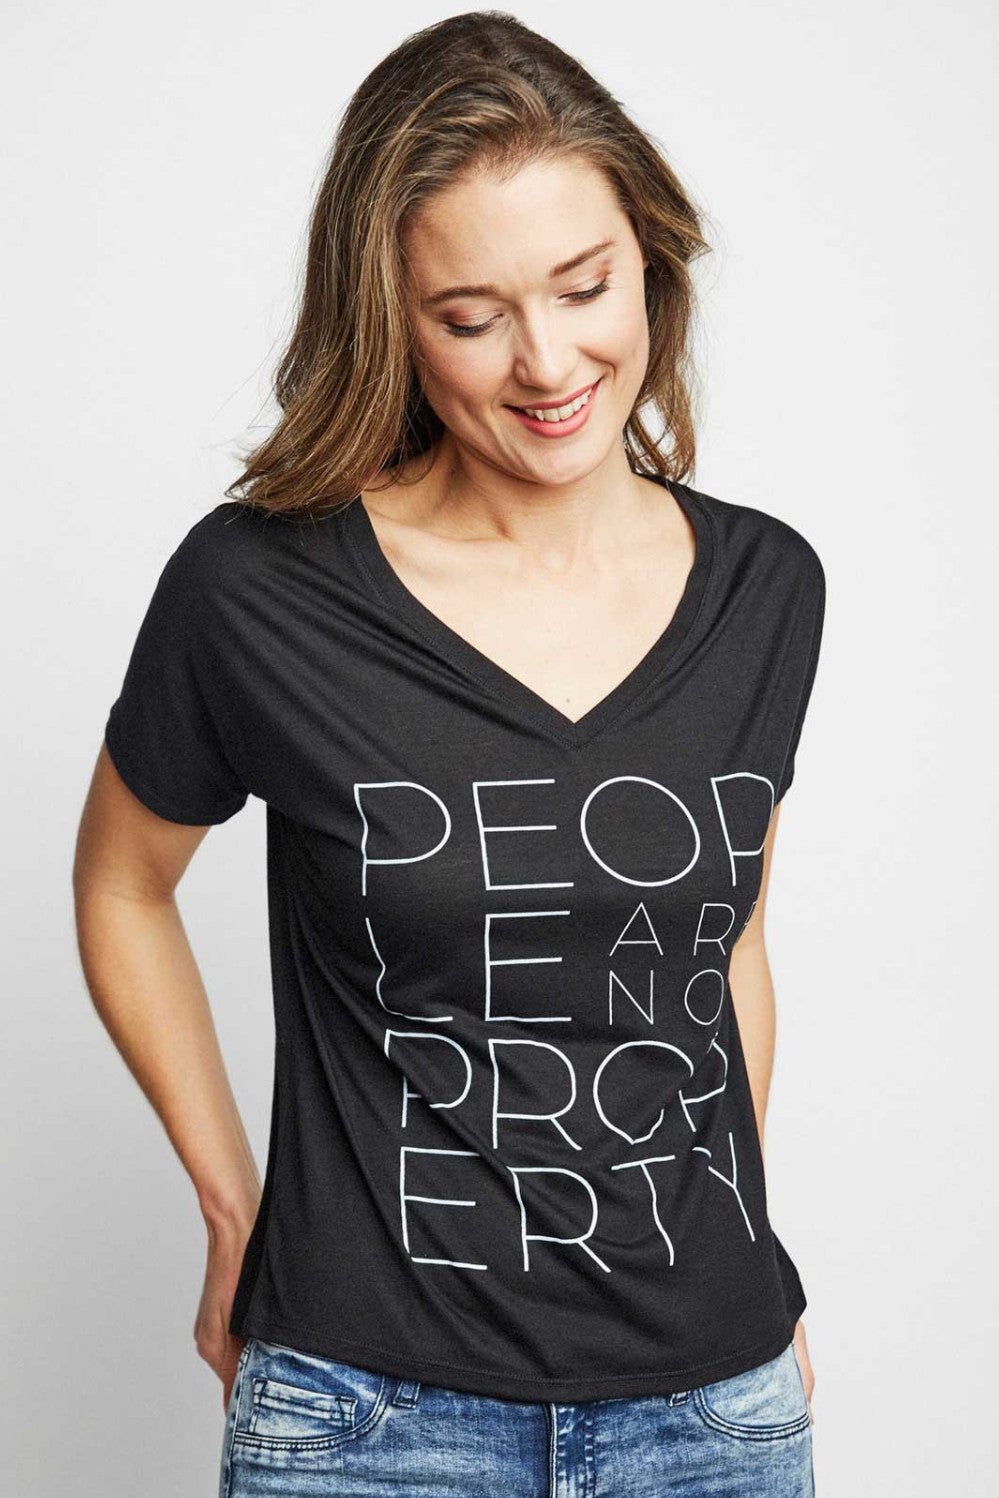 Sudara People Are Not Property Tee Black